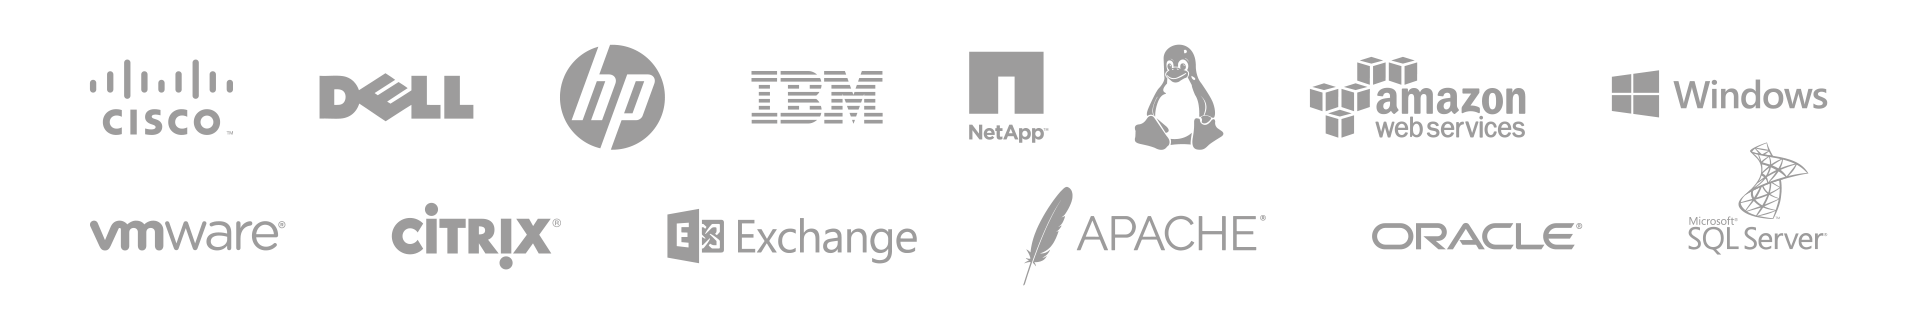 PRTG Cisco, Dell, HP, IBM, Netapp, Linux, Amazon, Windows, Exchange, SQL Server, Vmware, Apache